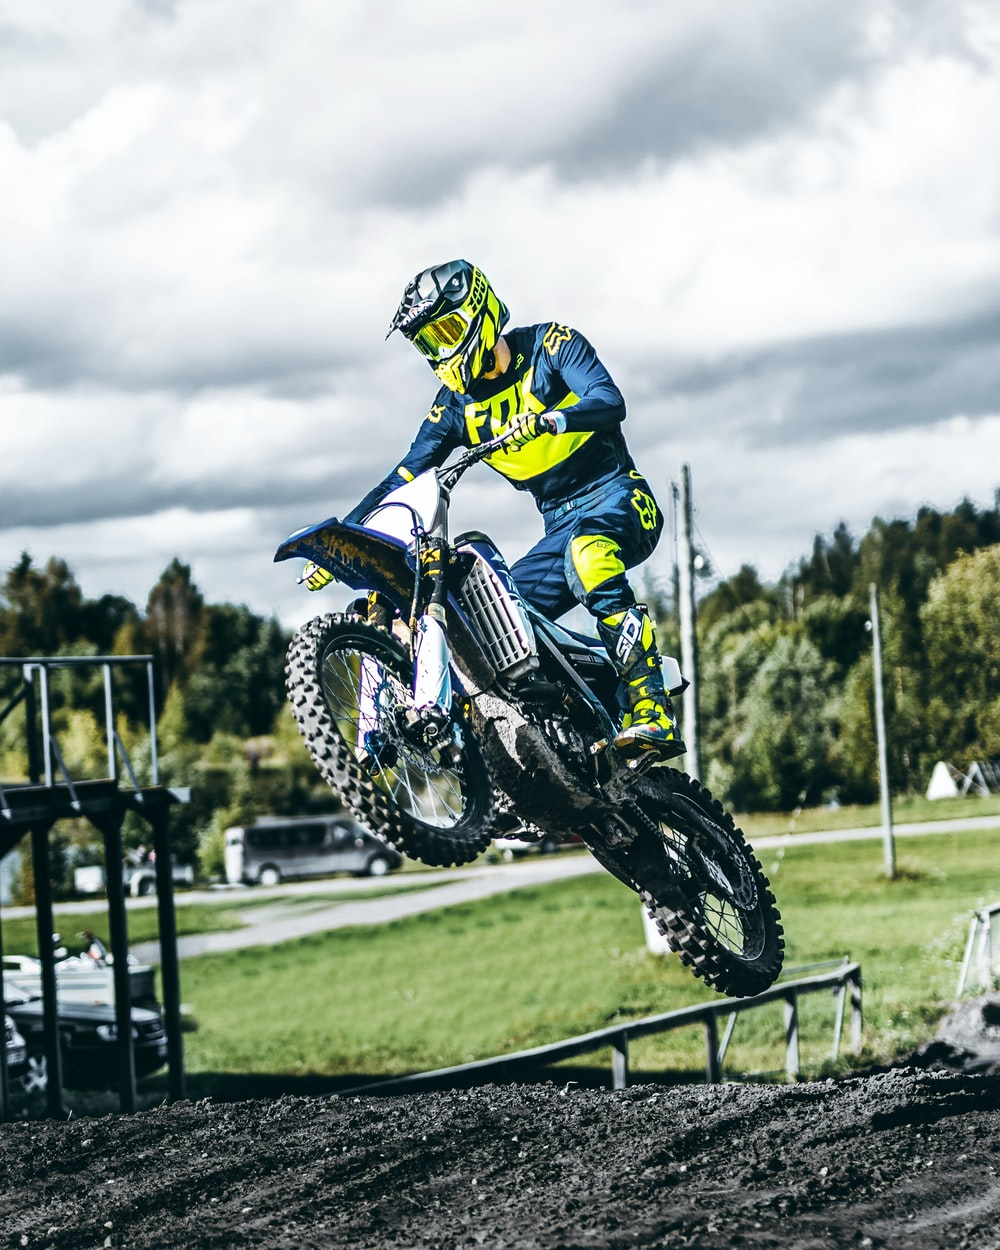 person wearing blue and yellow-green motocross suit midair